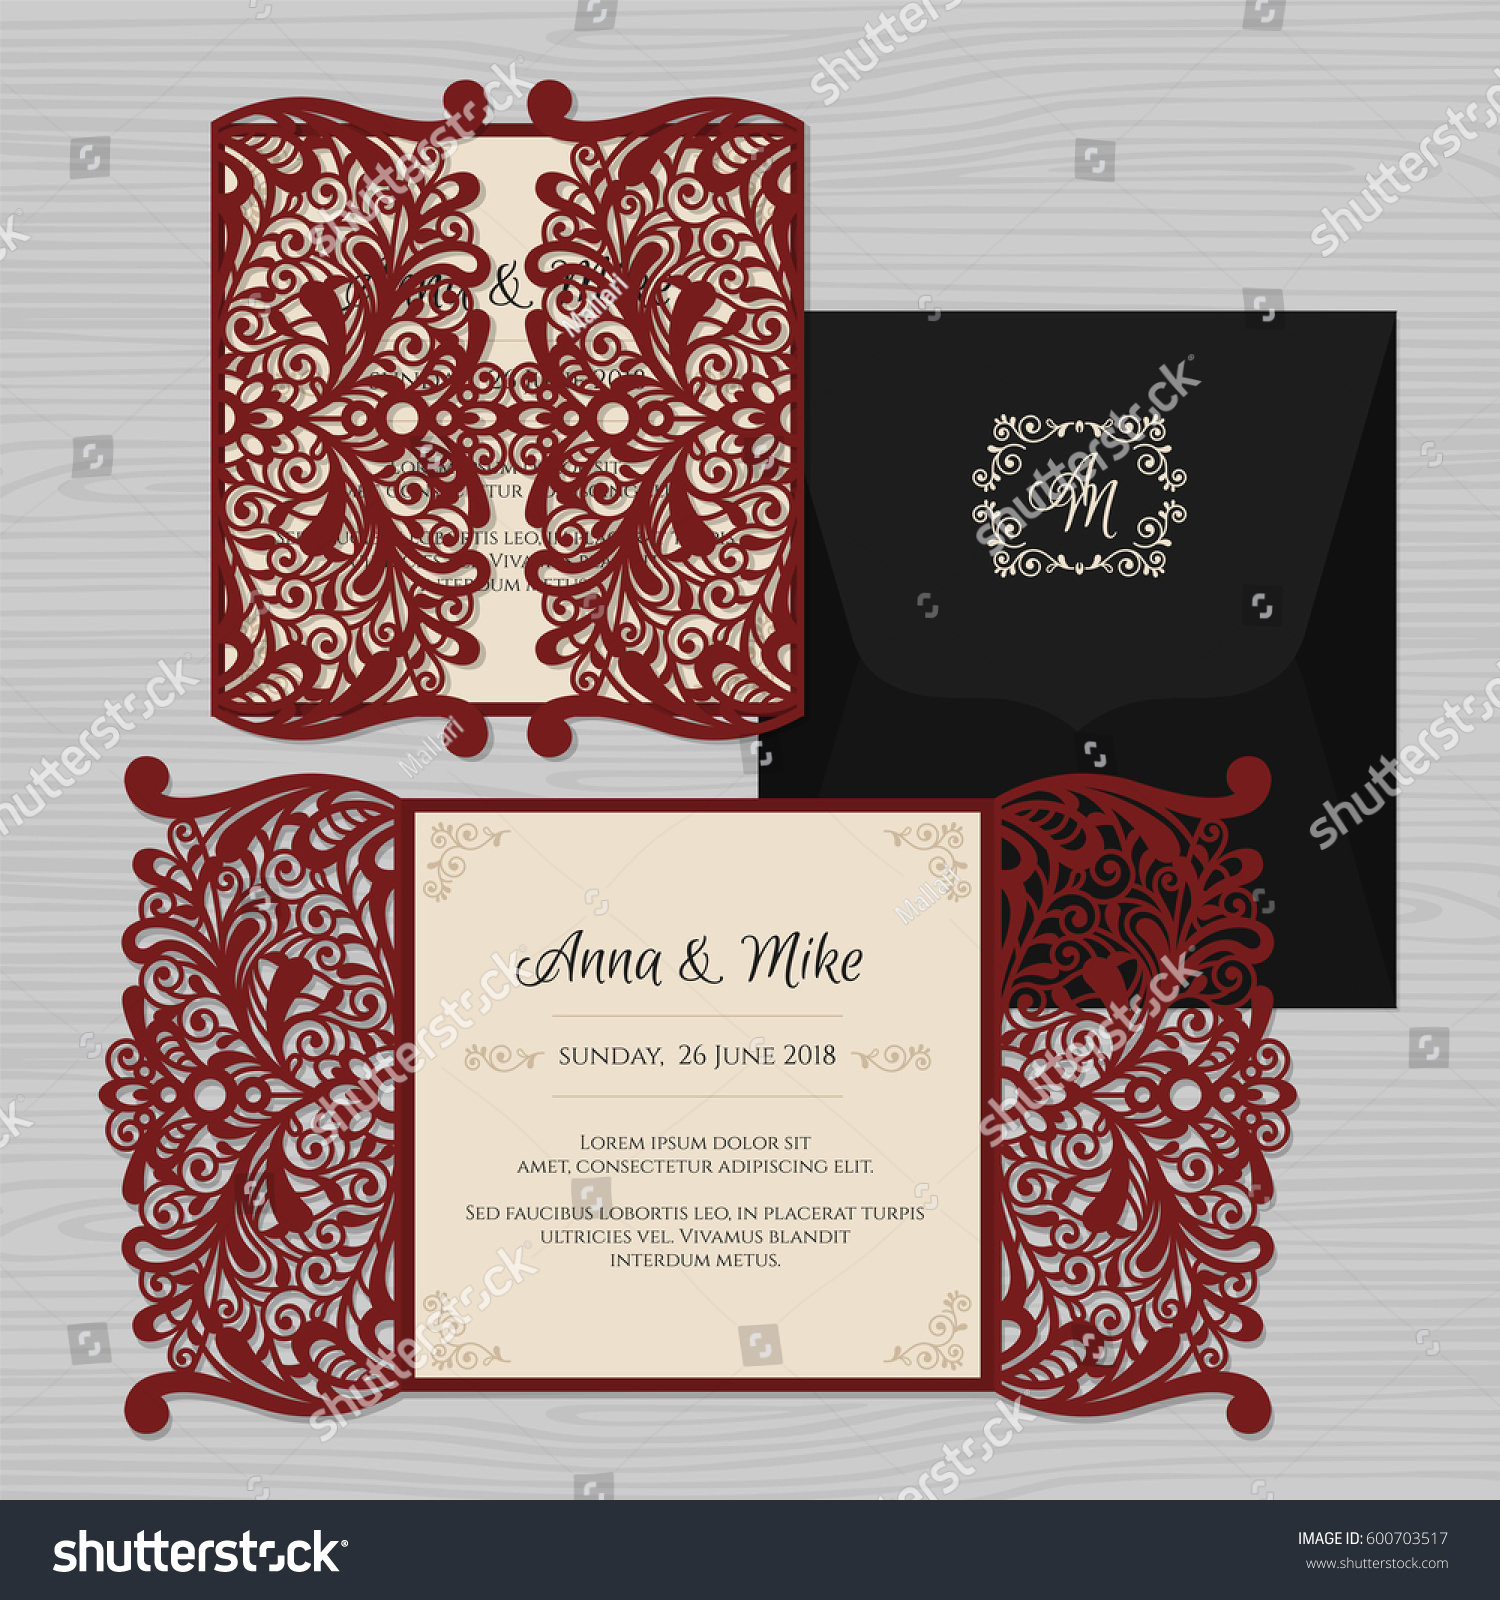 Wedding Invitation Greeting Card Vintage Ornament Stock Vector ...